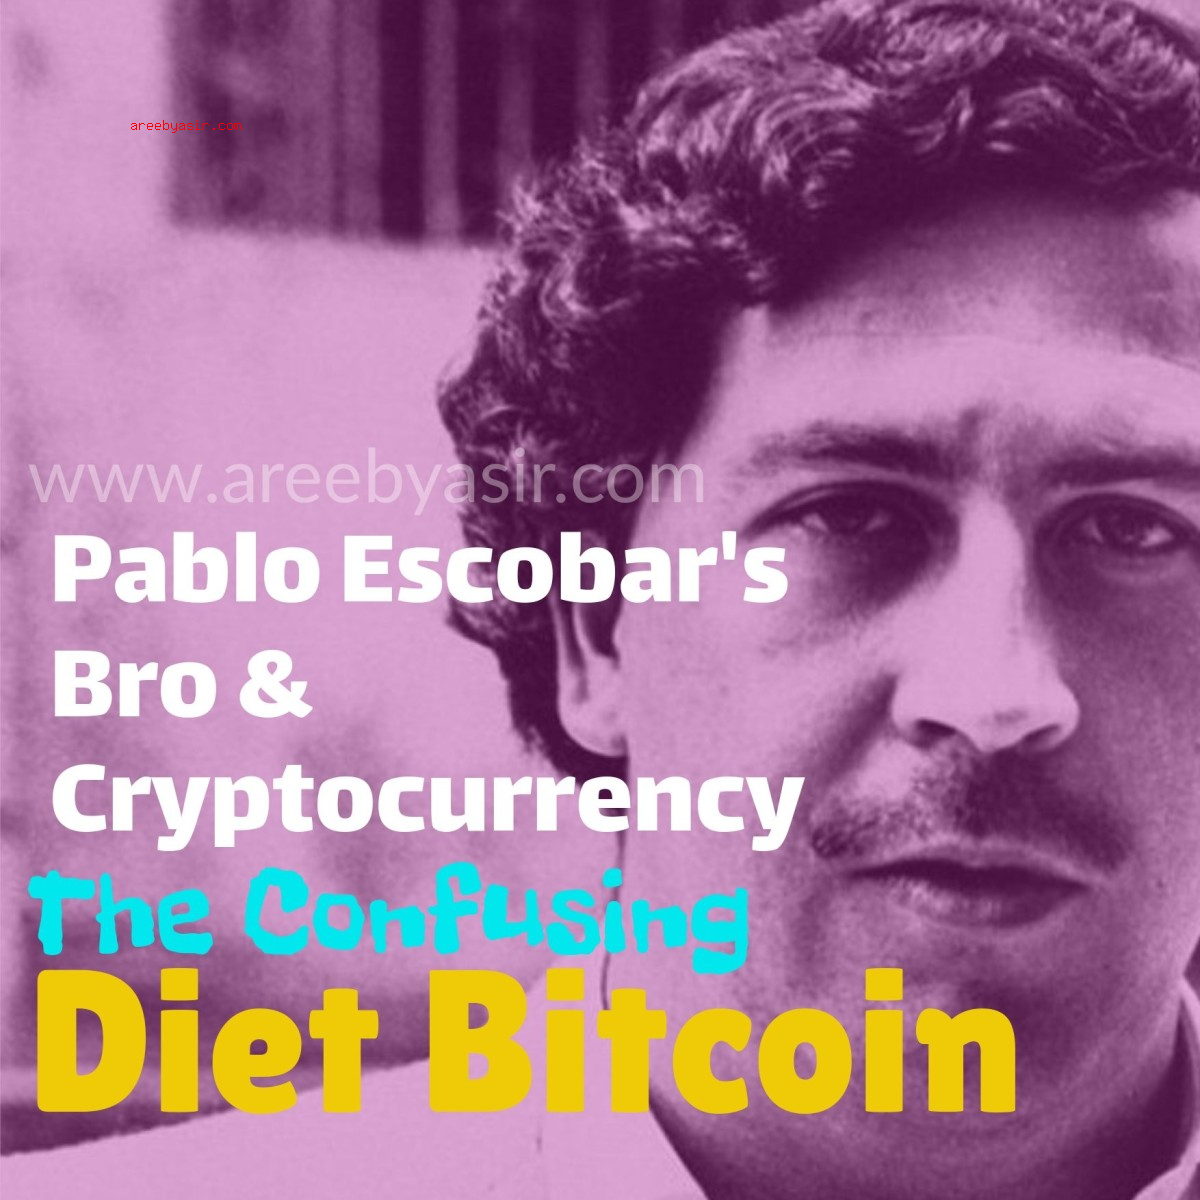 Pablo Escobar's Brother Trafficks an ICO and new Bitcoin Fork!